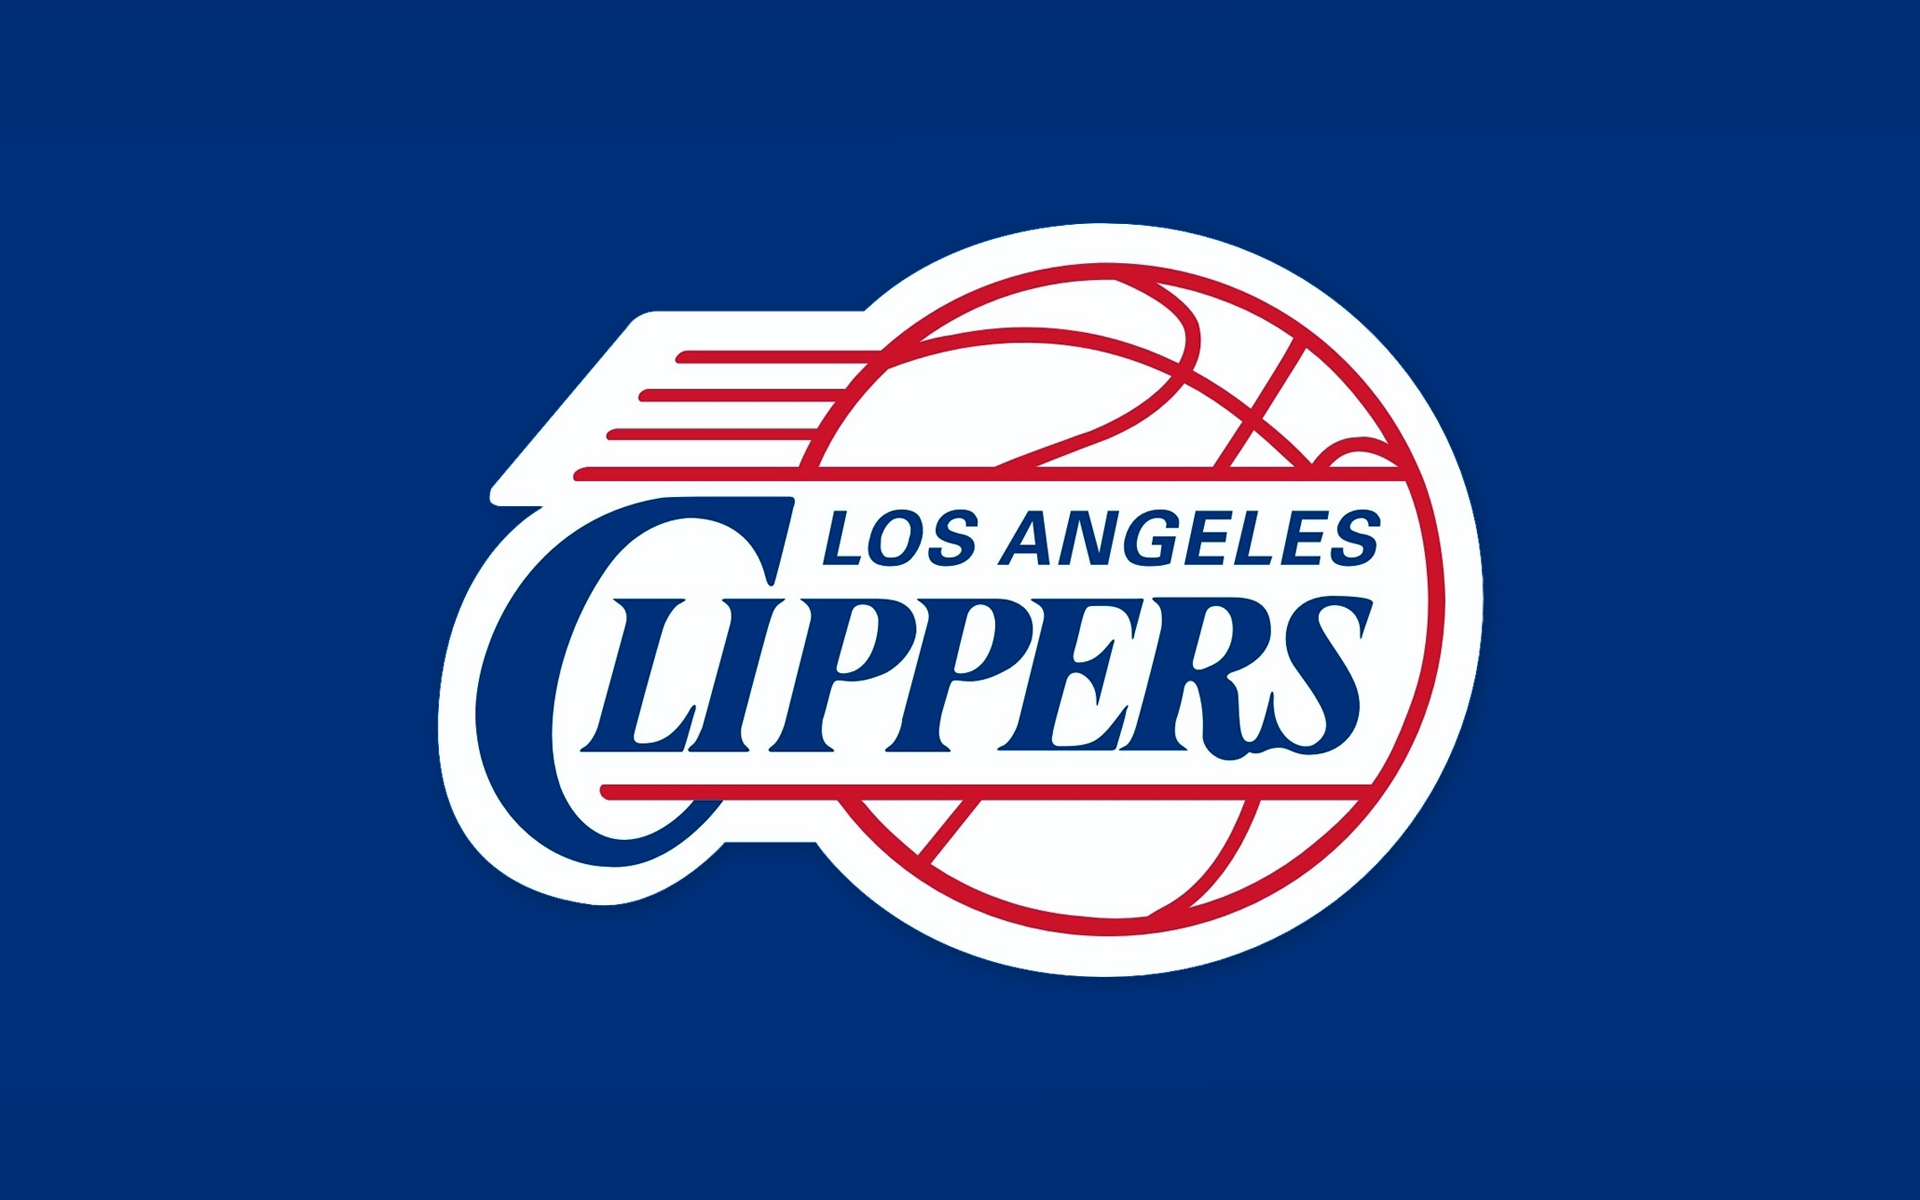 Clippers High Quality Wallpaper #39181921